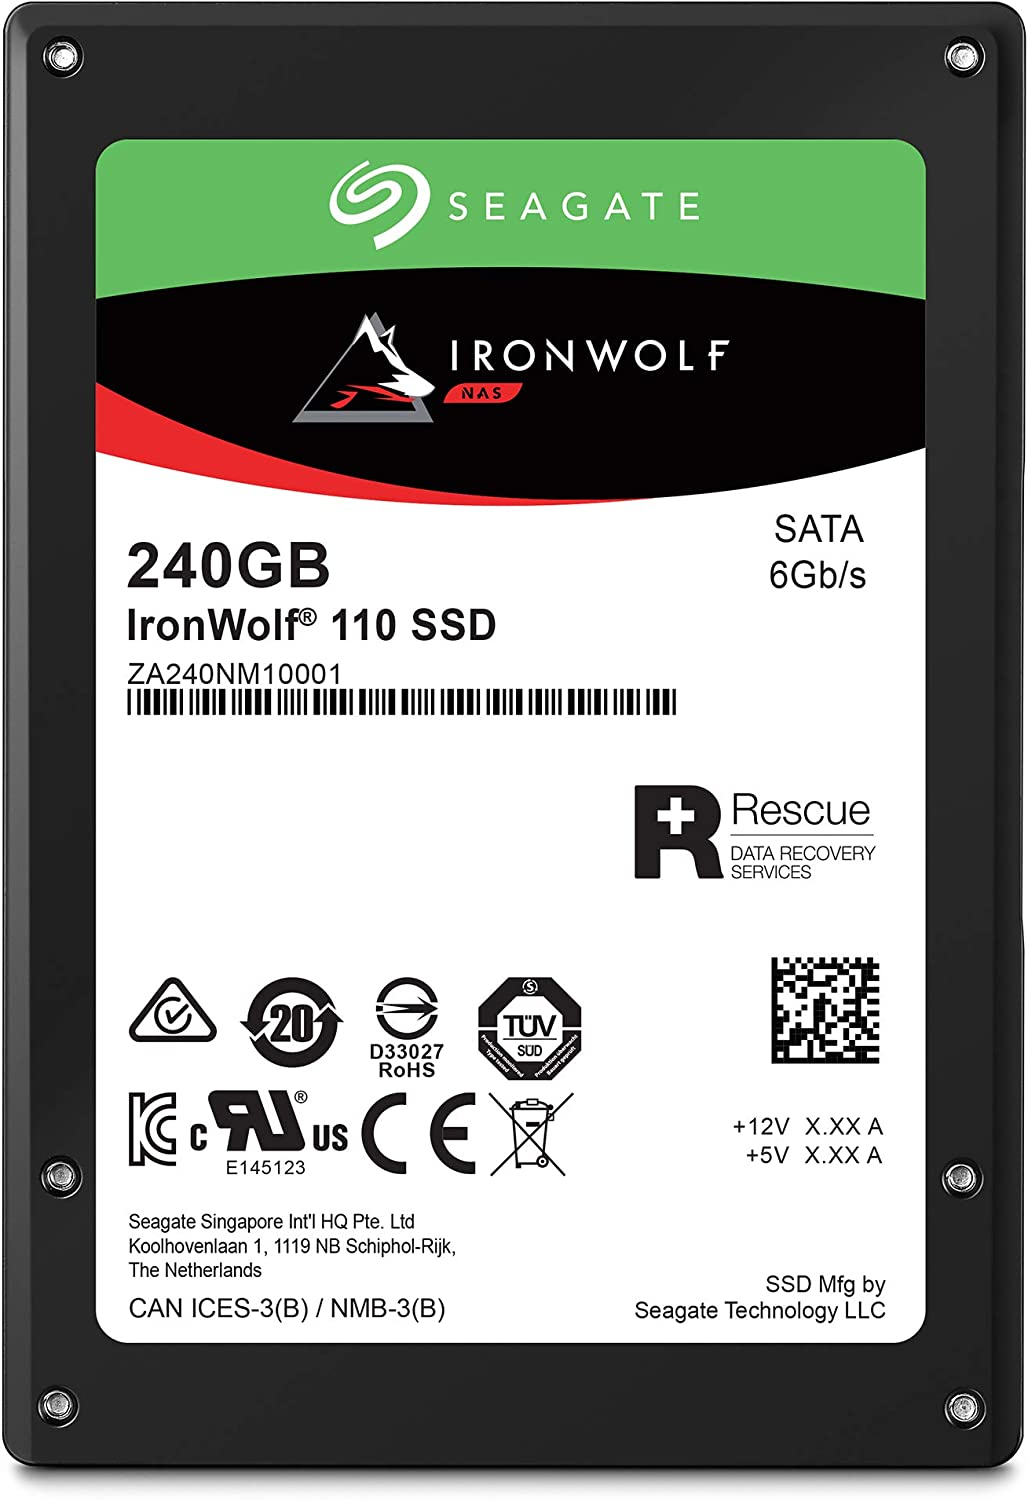 Seagate IronWolf 110 240GB NAS SSD Internal Solid State Drive – 2.5 inch SATA Multibay RAID System Network Attached Storage, 2 Year Data Recovery (ZA240NM10001)